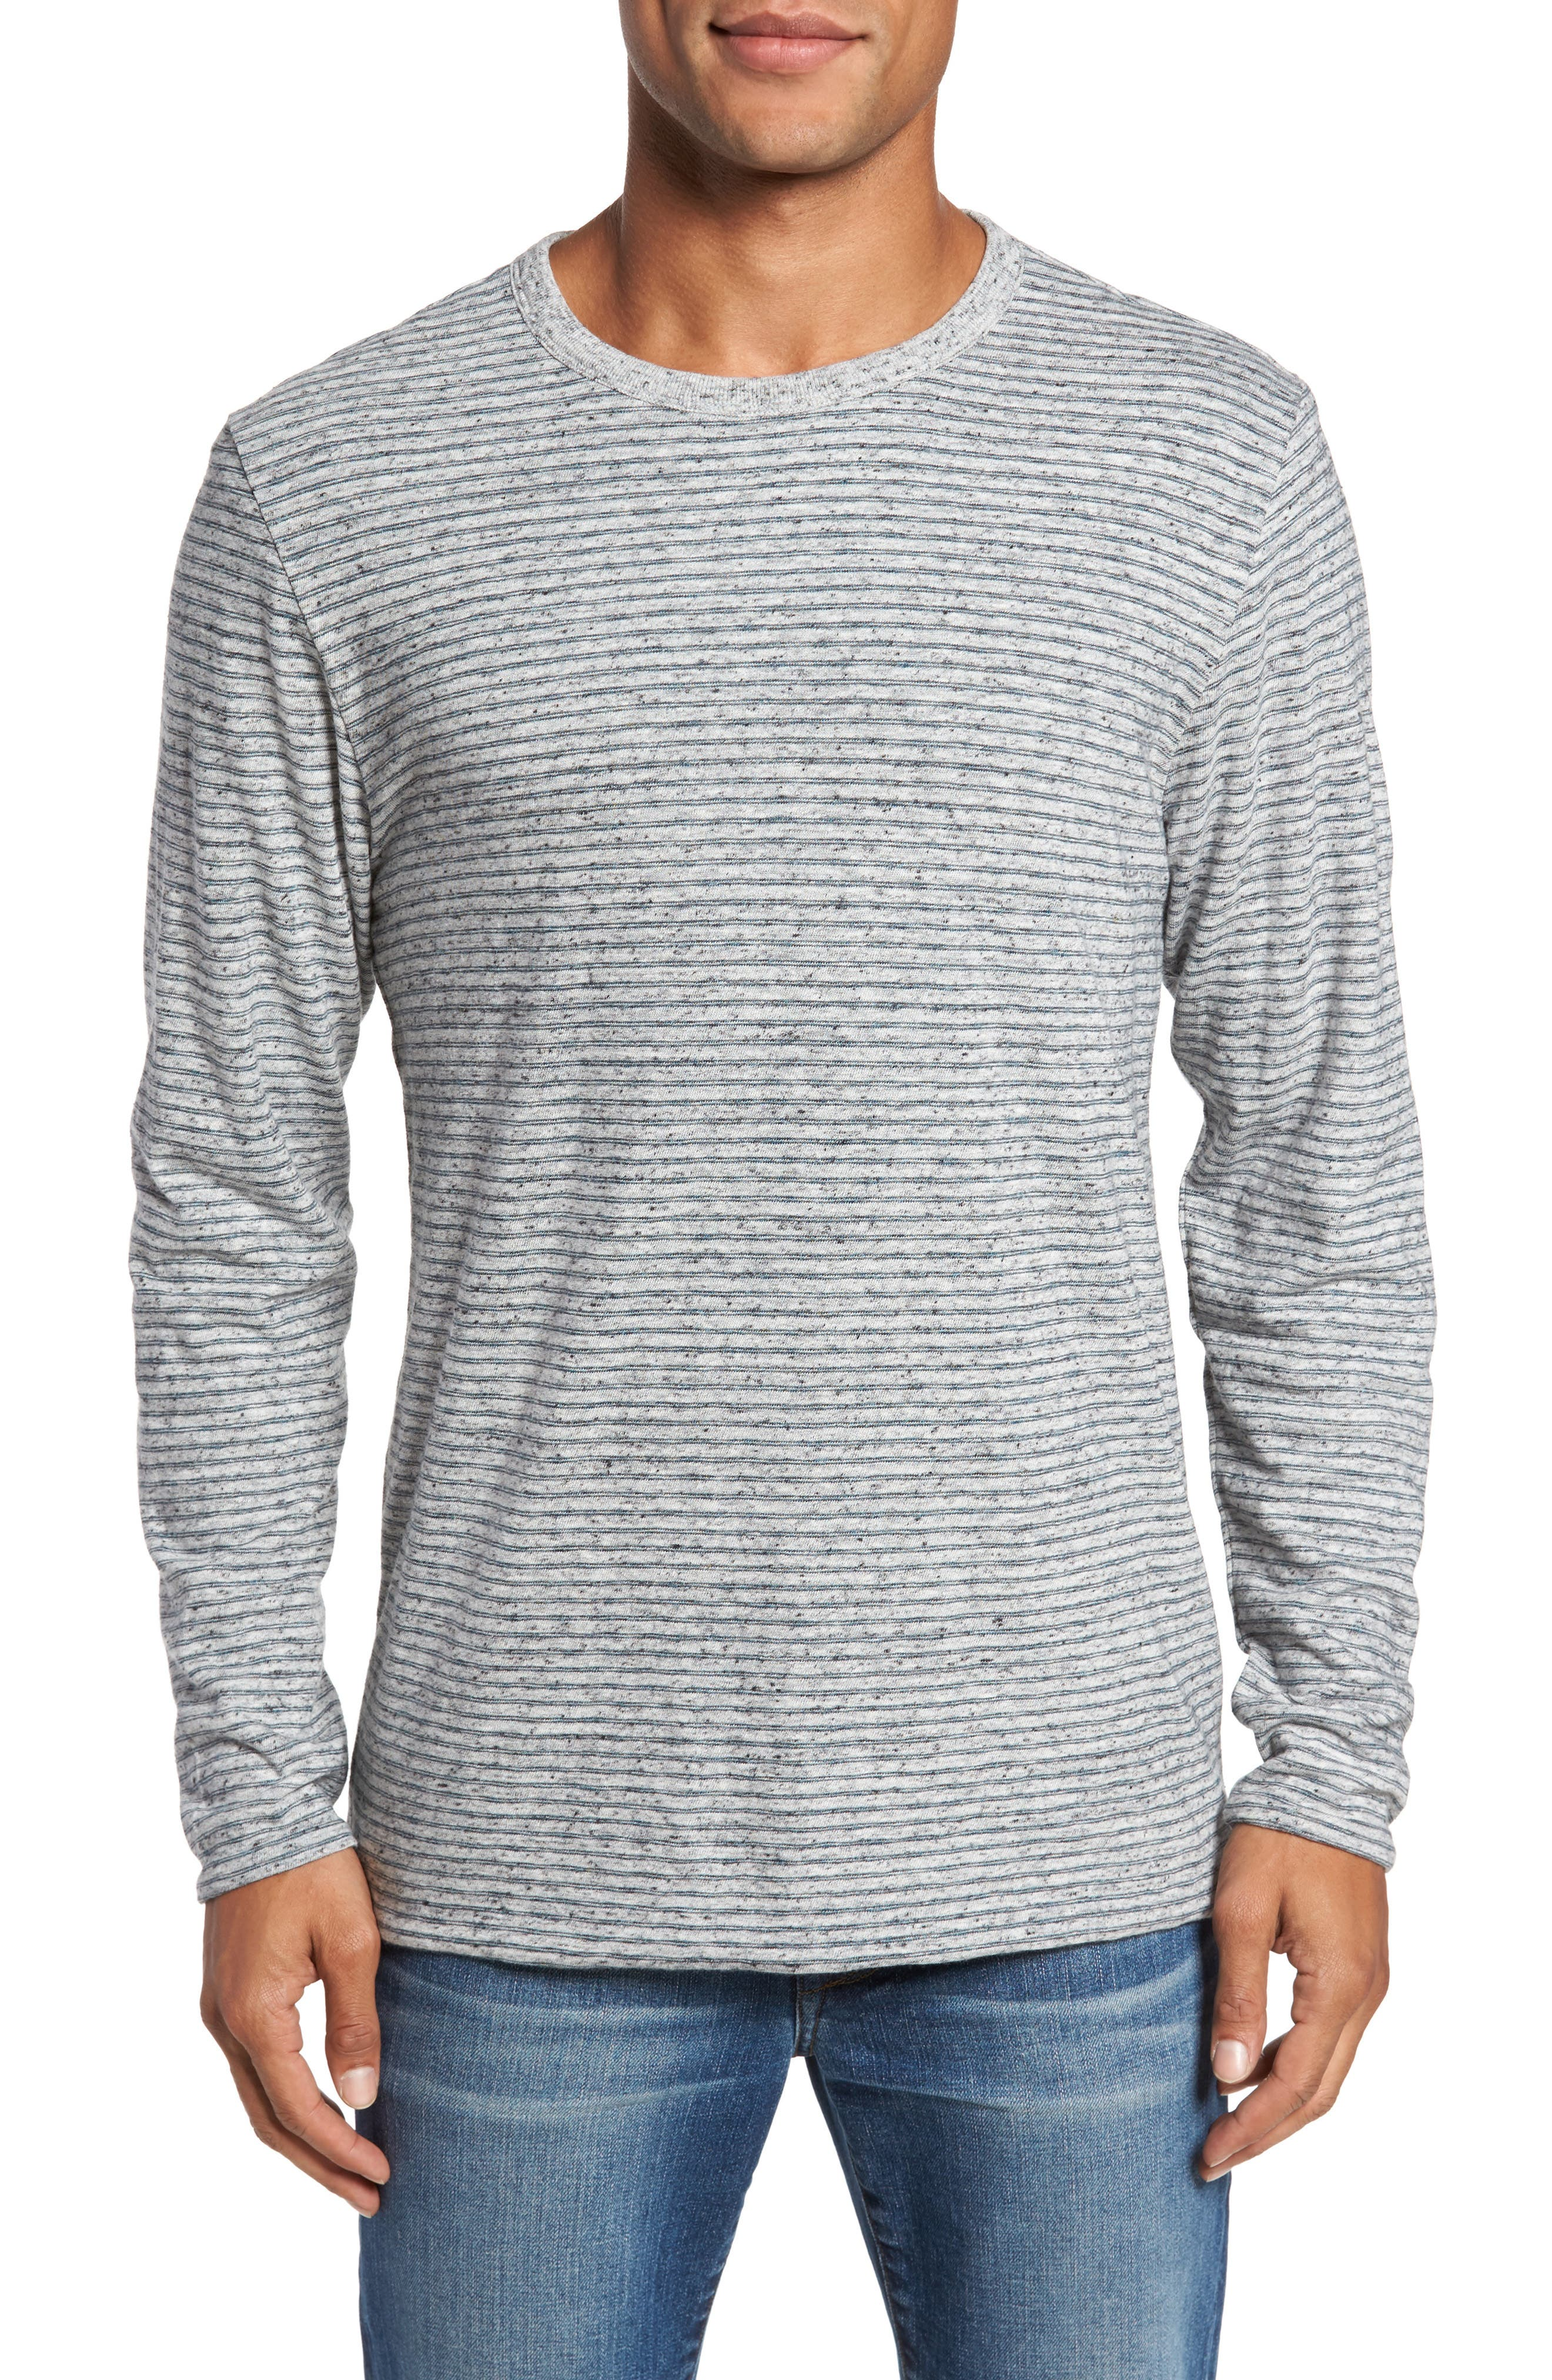 Heathered Reversible Long Sleeve Crewneck T-Shirt,                             Main thumbnail 1, color,                             032